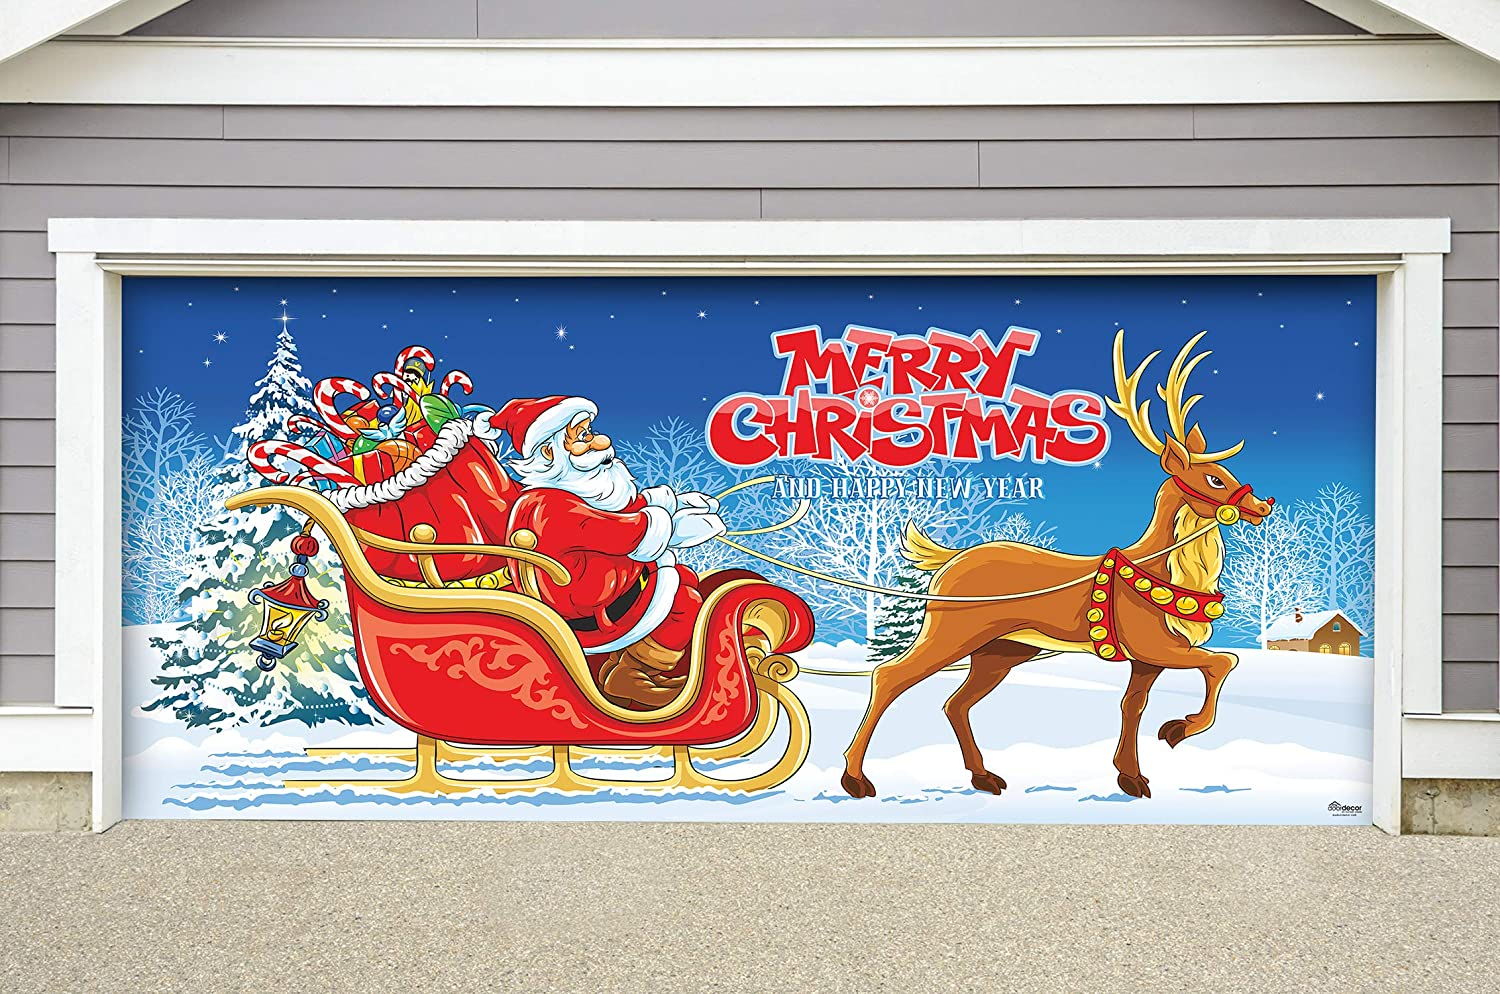 Amazon Com Victory Corps Outdoor Christmas Holiday Garage Door Banner Cover Mural Décoration 7 X16 Santa S Sleigh Ride Outdoor Christmas Holiday Garage Door Banner Décor Sign 7 X16 Home Kitchen